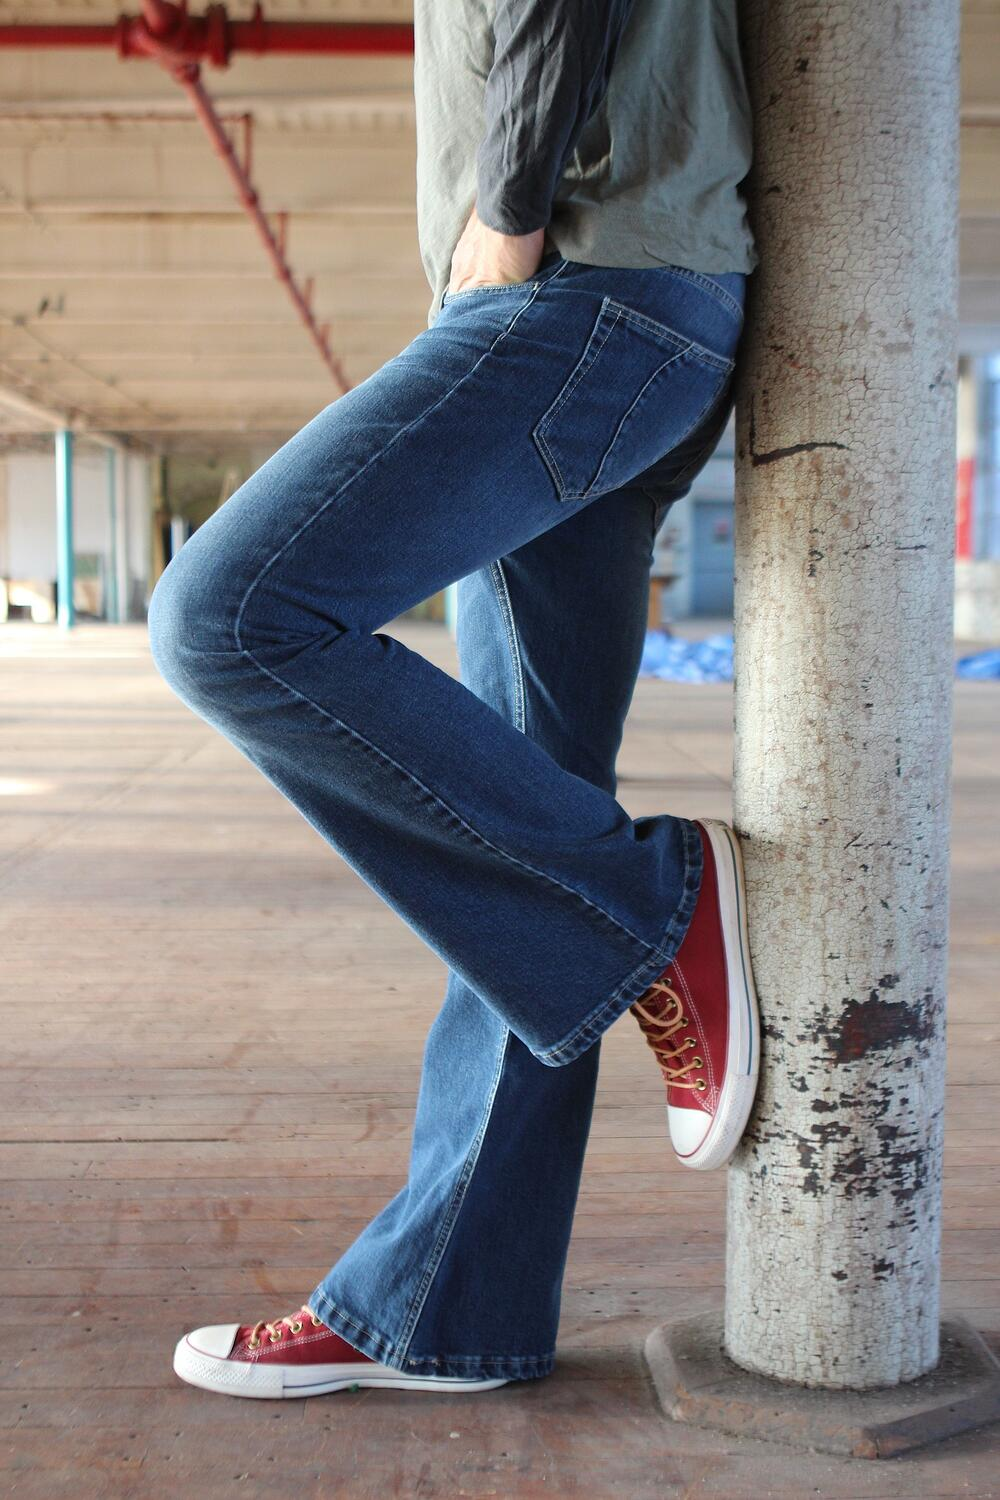 Create your custom pair of denim jeans, in Italy, just like this U.S. designer. - MakersValley Blog